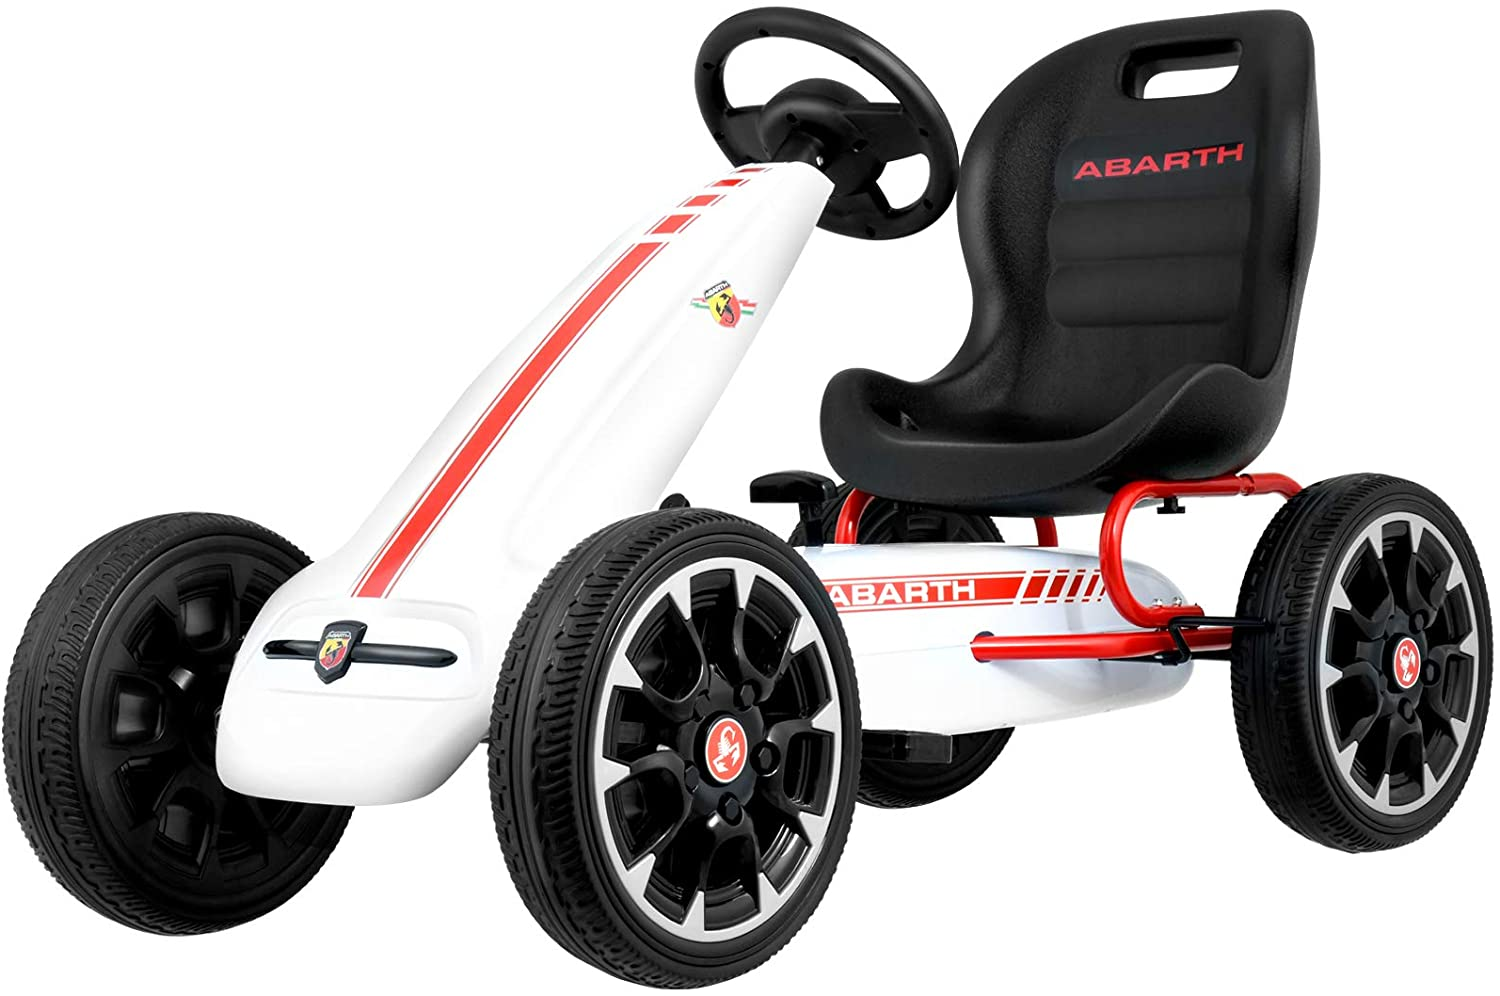 Uenjoy Kart On Foot Ride On Car,Large Riding Toys for Boys and Girls,Outdoor Toys,Aged 3-8,EVA Tires,Brakes and Gears,Gifts for Children,Sports Educational Fitness Toy Stroller-White